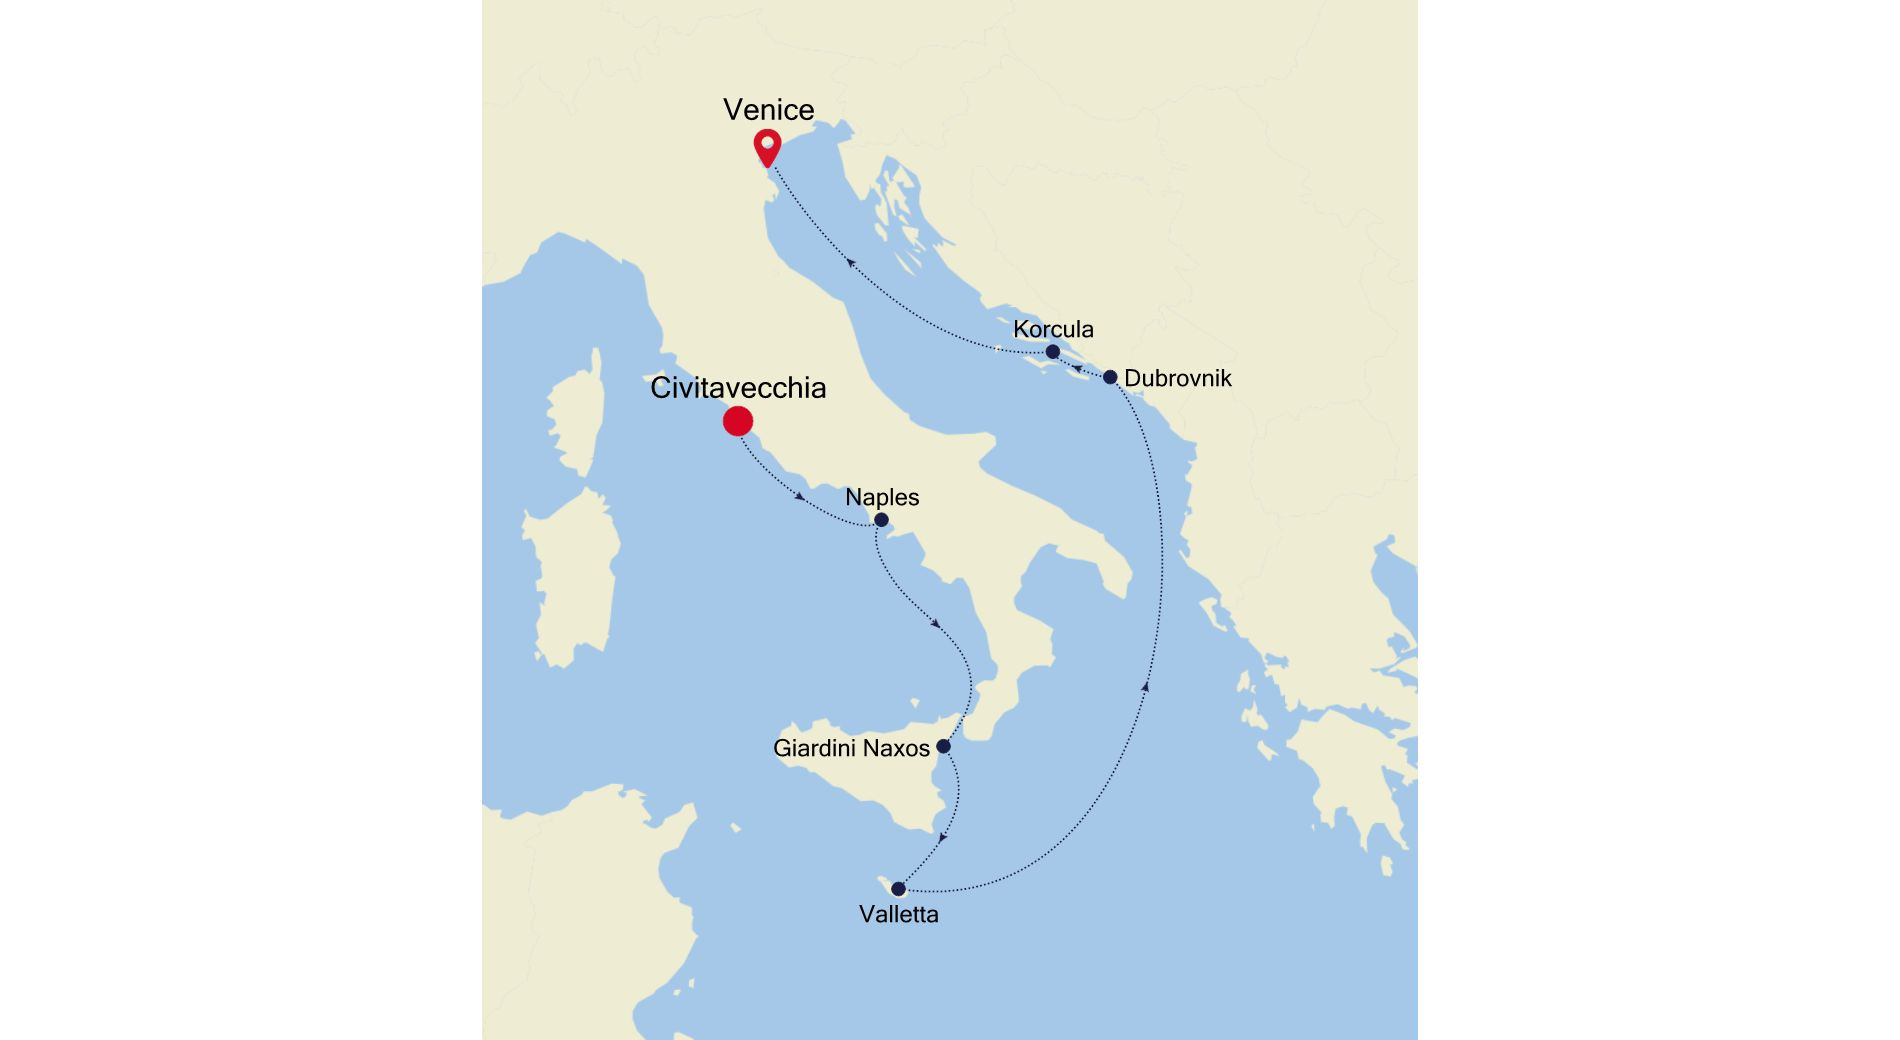 3928 - Civitavecchia to Venice